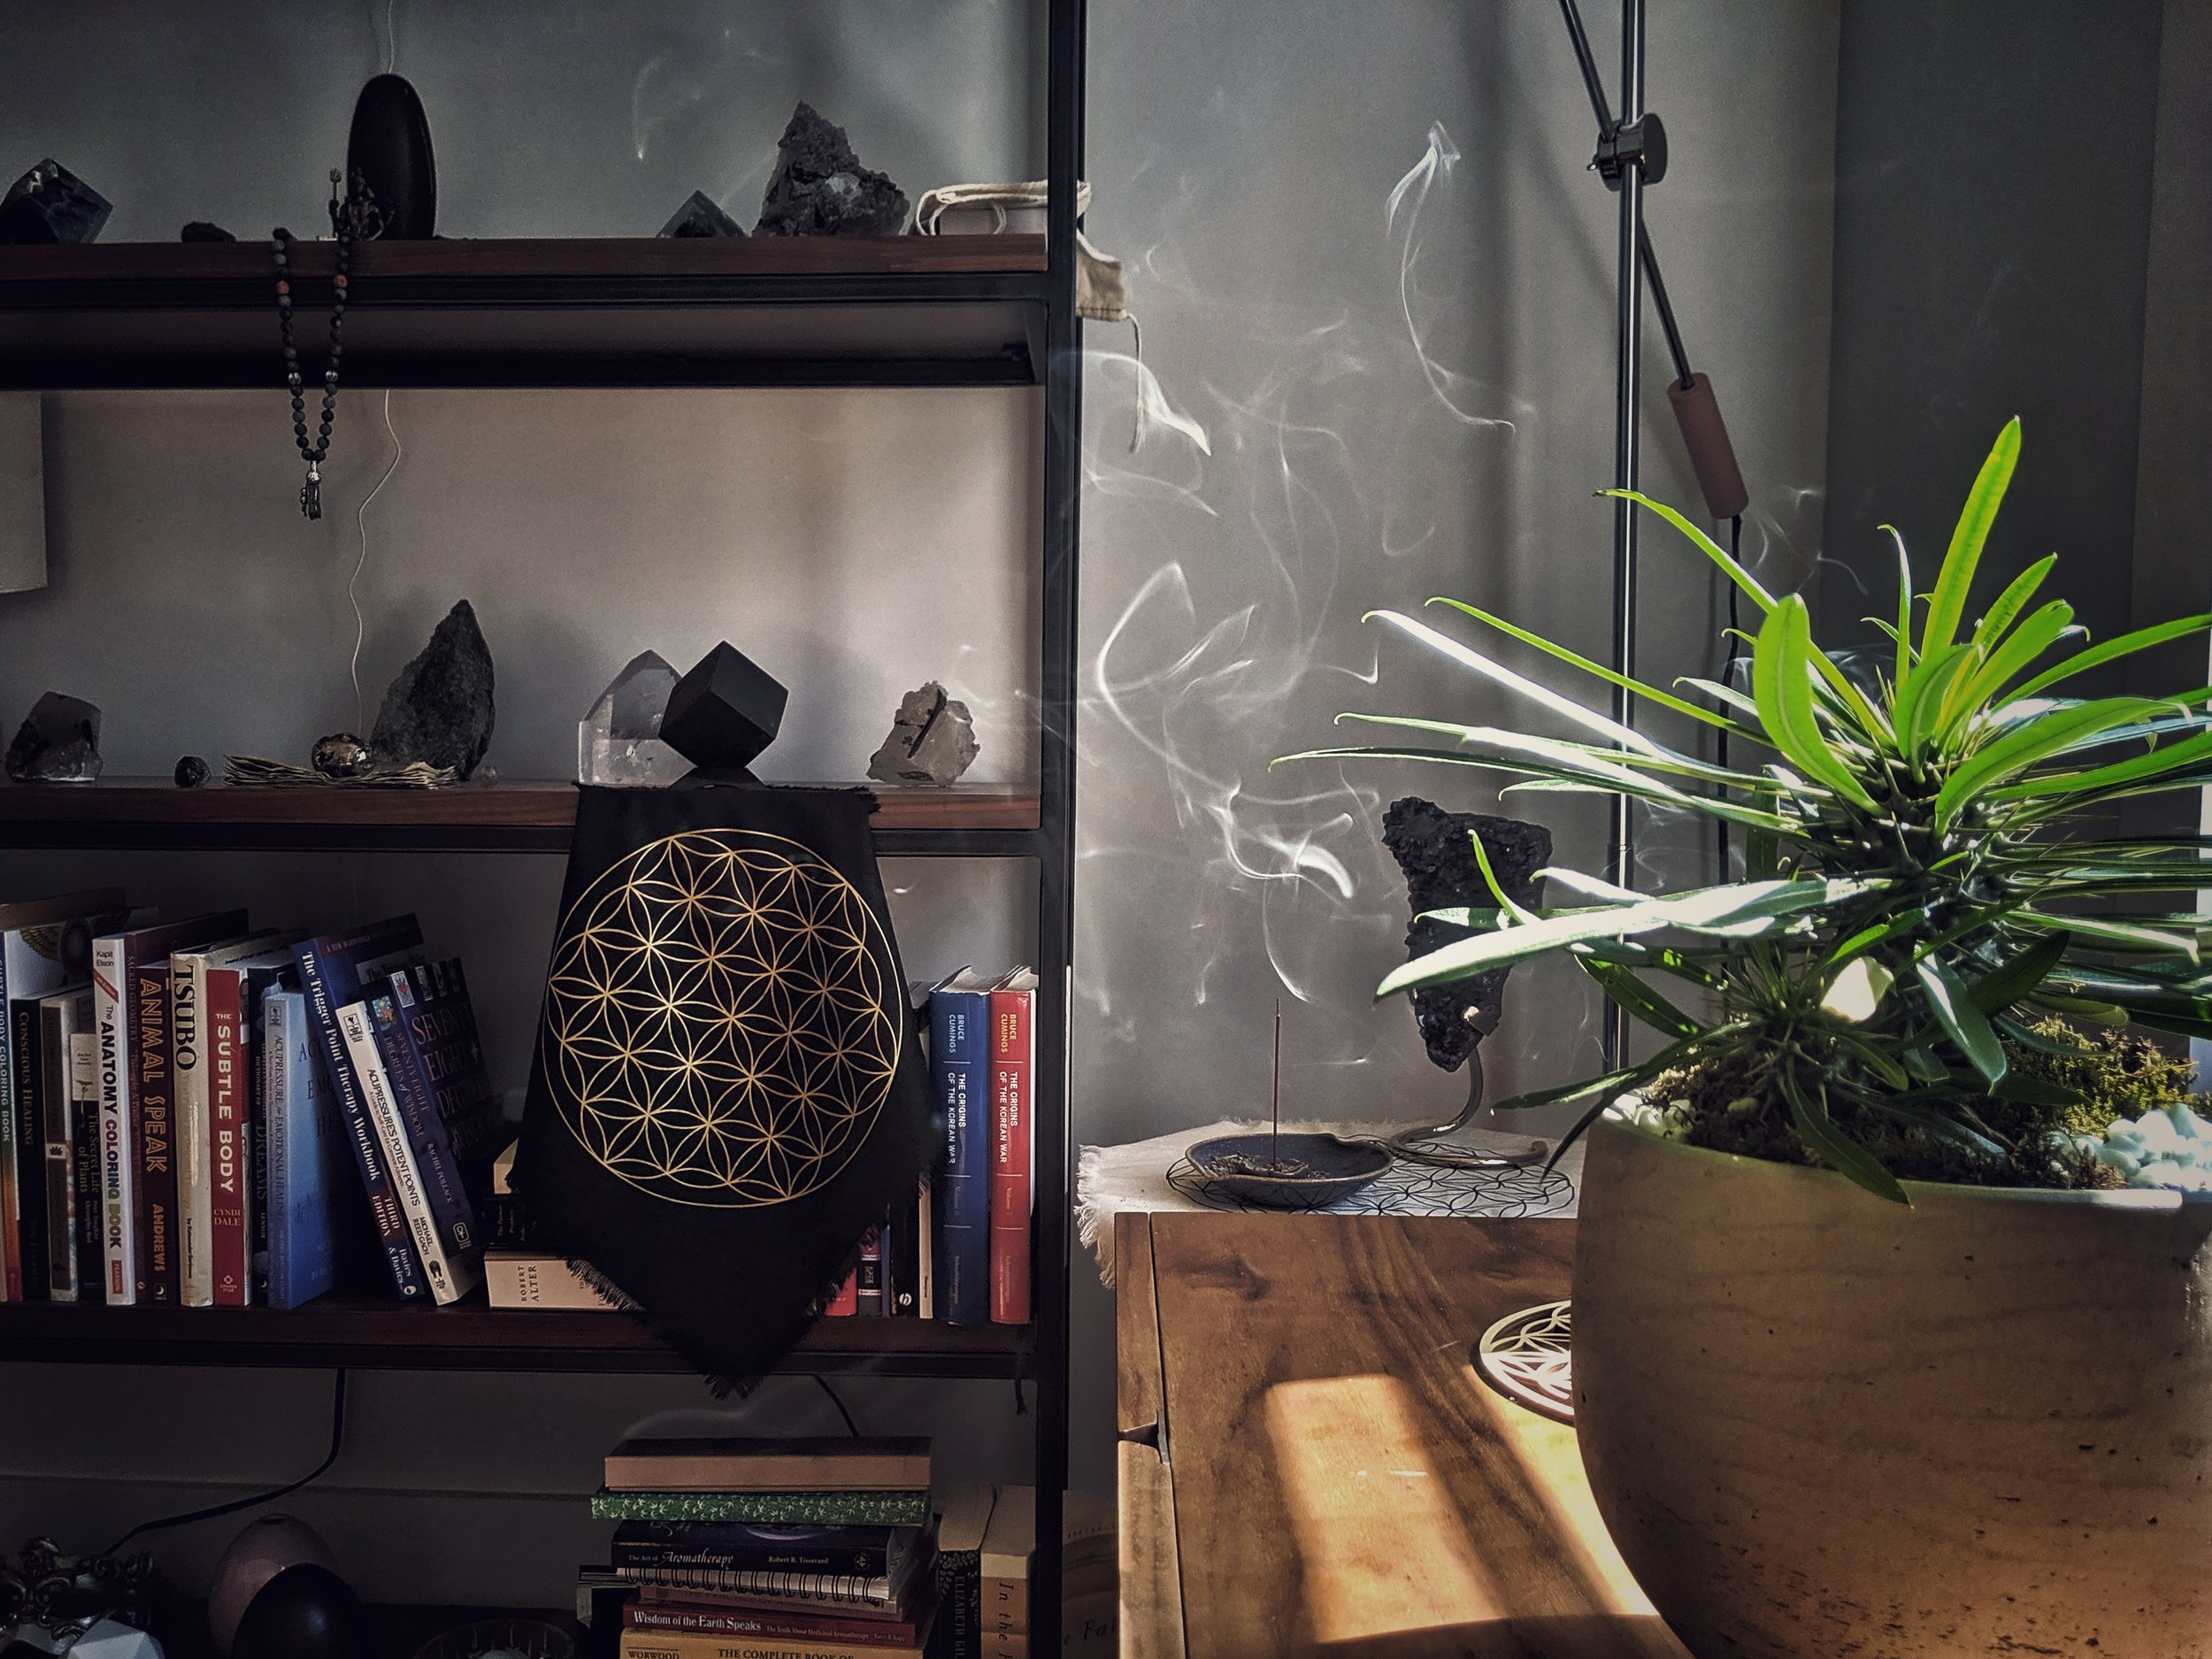 incense burning in the morning